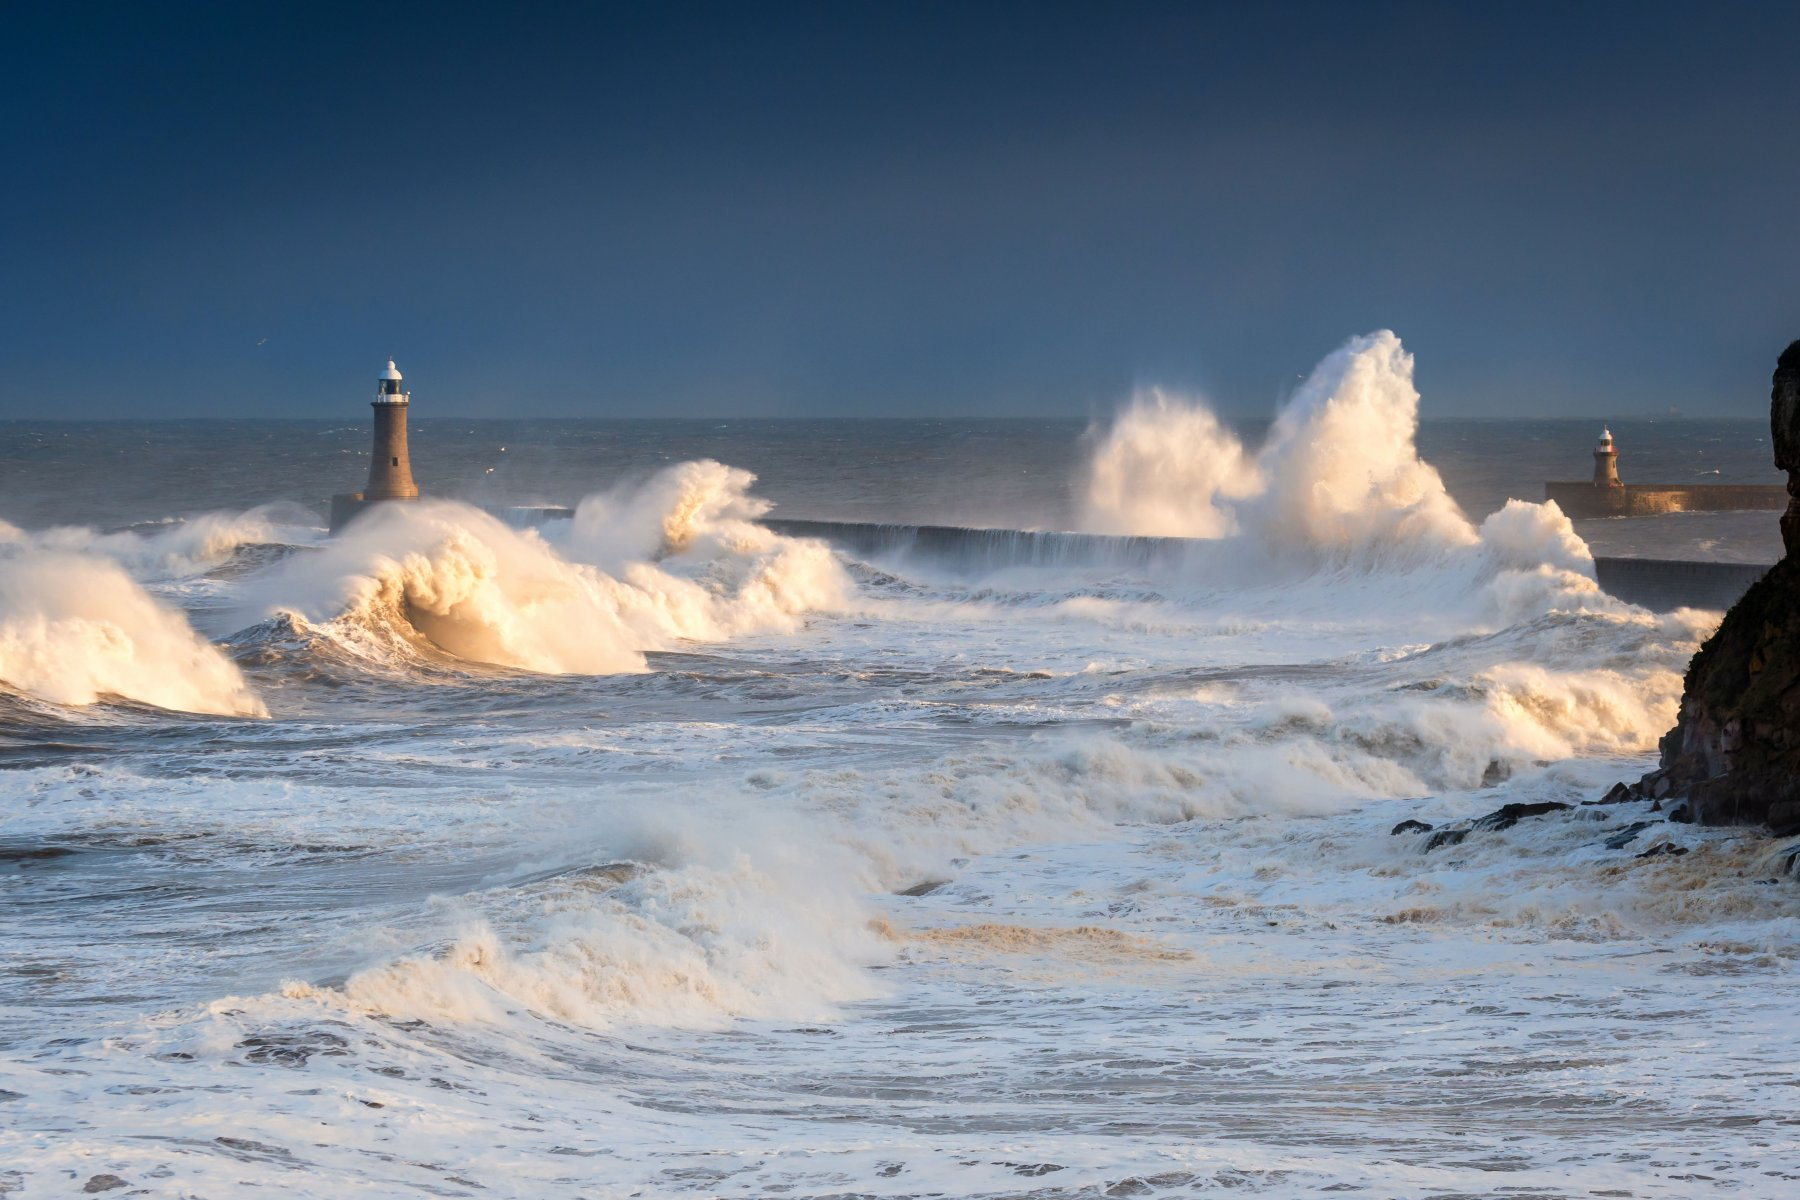 Avantage fiscal injustifié : ou vouloir saisir l'insaisissable. Rough Sea at Tynemouth / A stormy sea hits Tynemouth North Pier, resulting in high crashing waves cascading into the mouth of the River Tyne; Shutterstock ID 568499983; Ordering Party: CMS DSB (Mirjam Vastenholt); Job/Project: Invitation